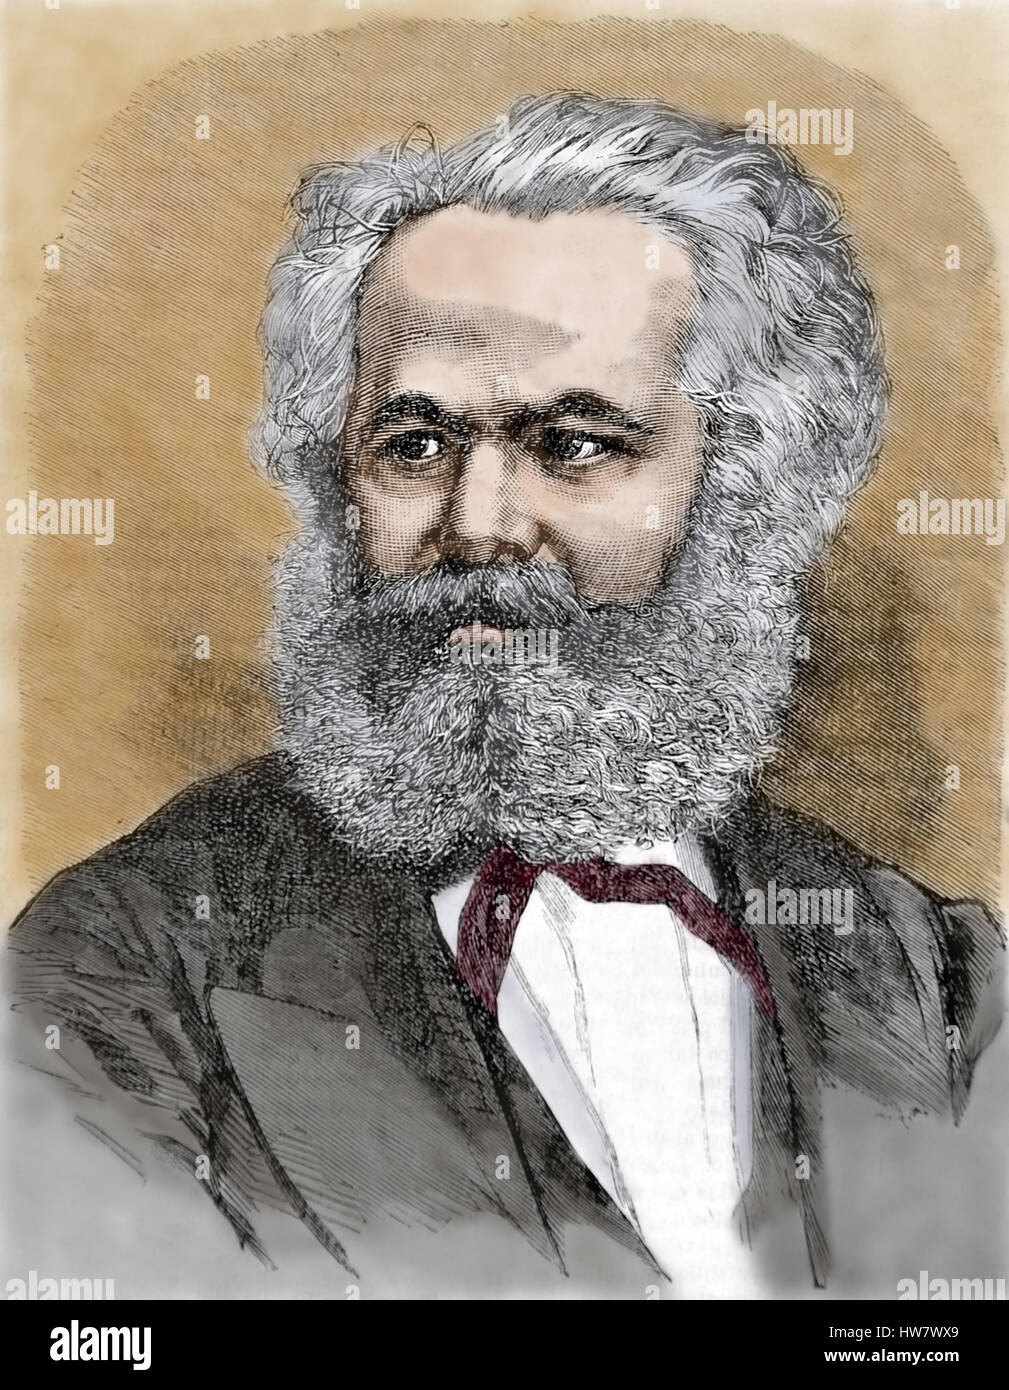 Karl Marx (1818-1883) 19th. Century. Economist, philosopher and revolutionary socialist.The communist Manifesto. - Stock Image